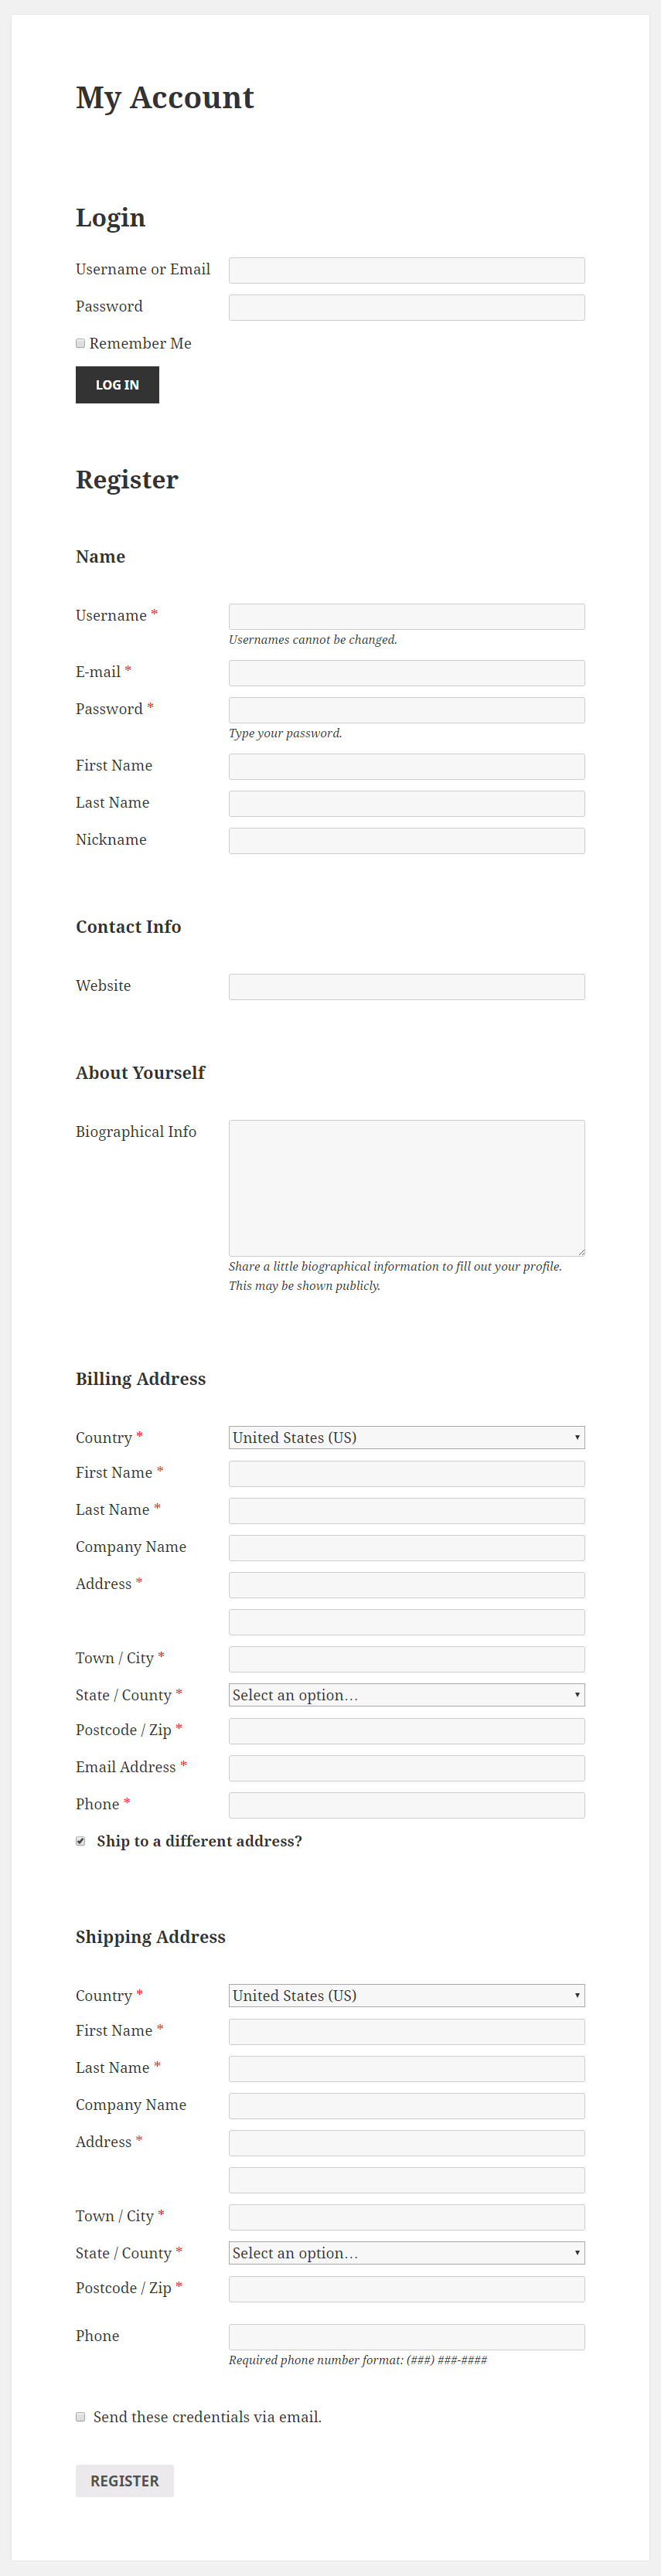 Profile Builder Pro - WooCommerce Sync - Register Form on My Account page